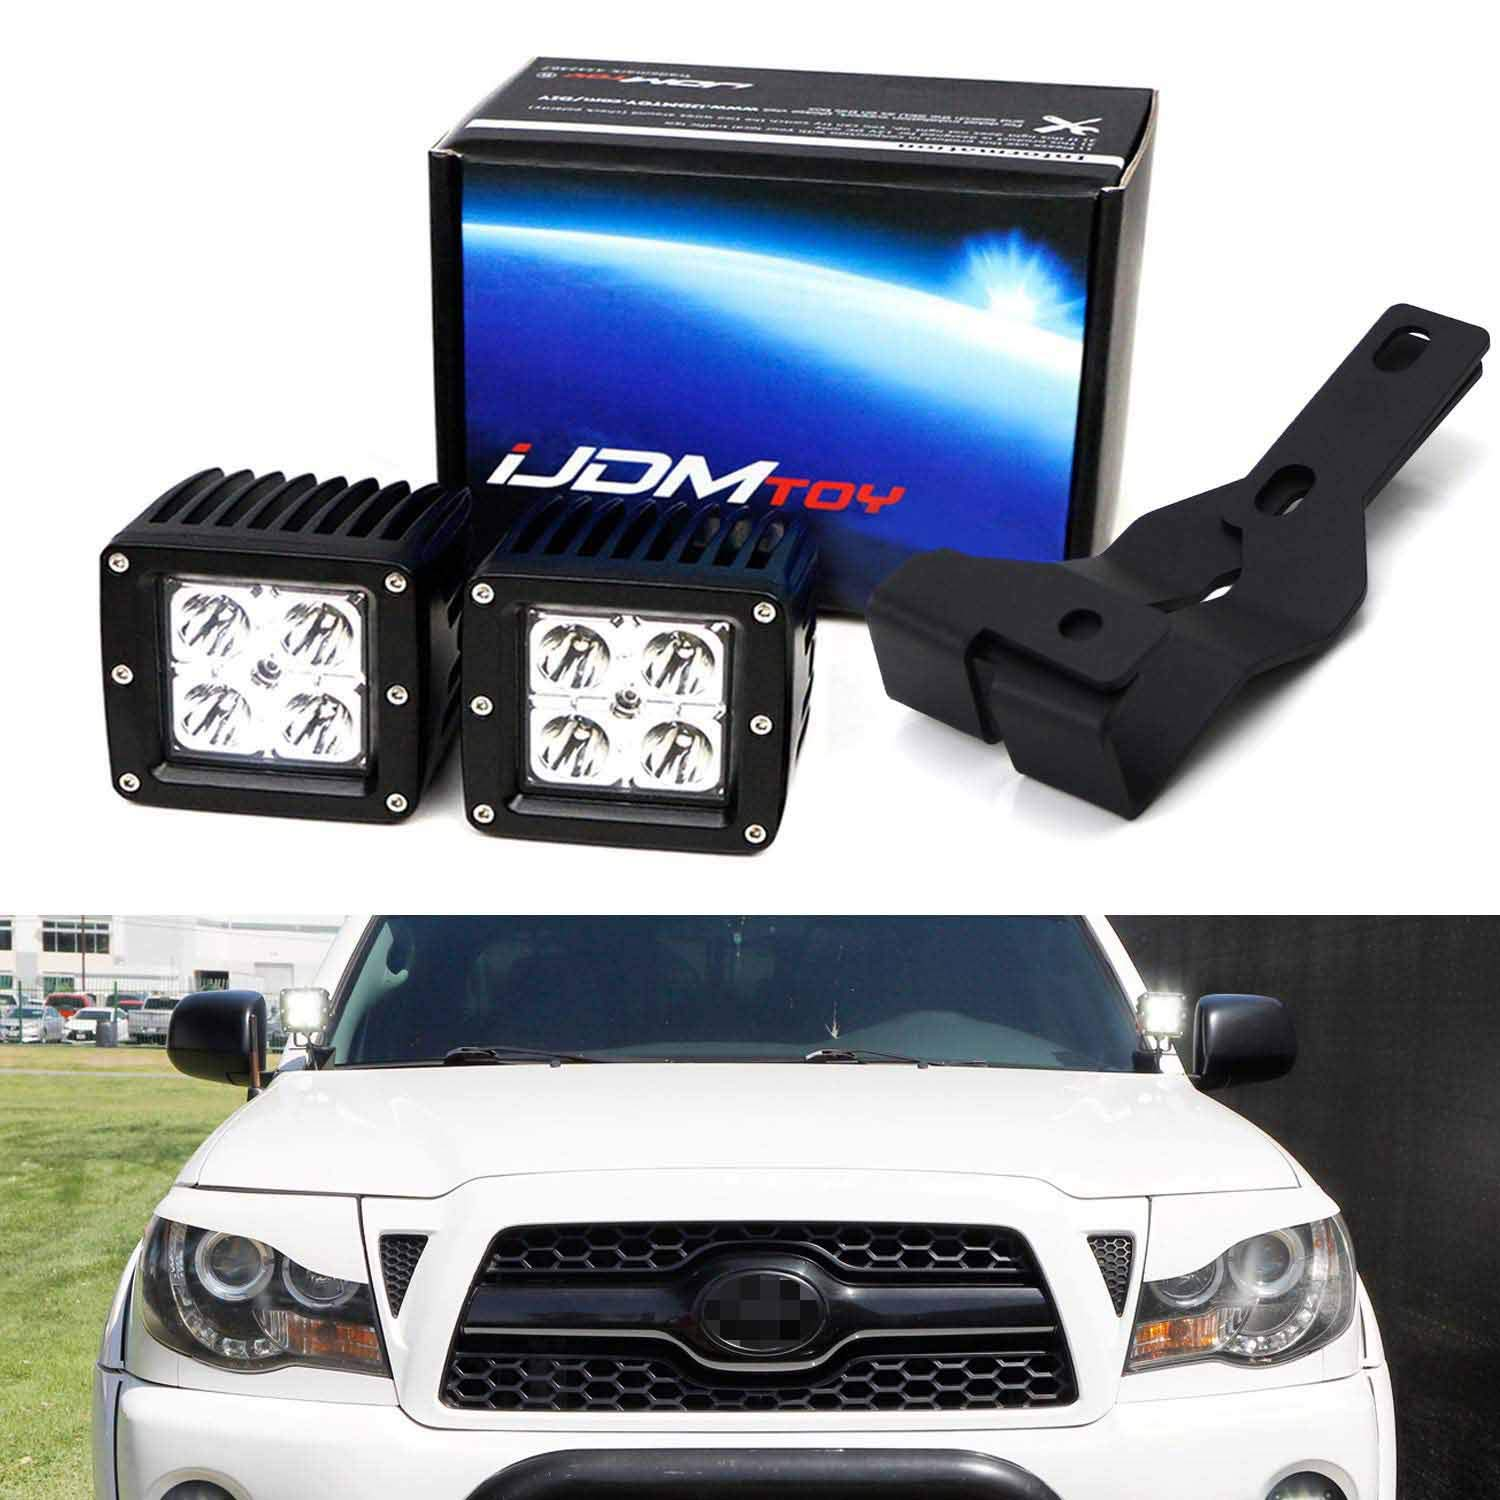 iJDMTOY A-Pillar LED Pod Light Kit Compatible With 2005-2015 Toyota Tacoma, Includes (2) 20W High Power CREE LED Cubes, Windshield A-Pillar Mounting Brackets & On/Off Switch Wiring Kit